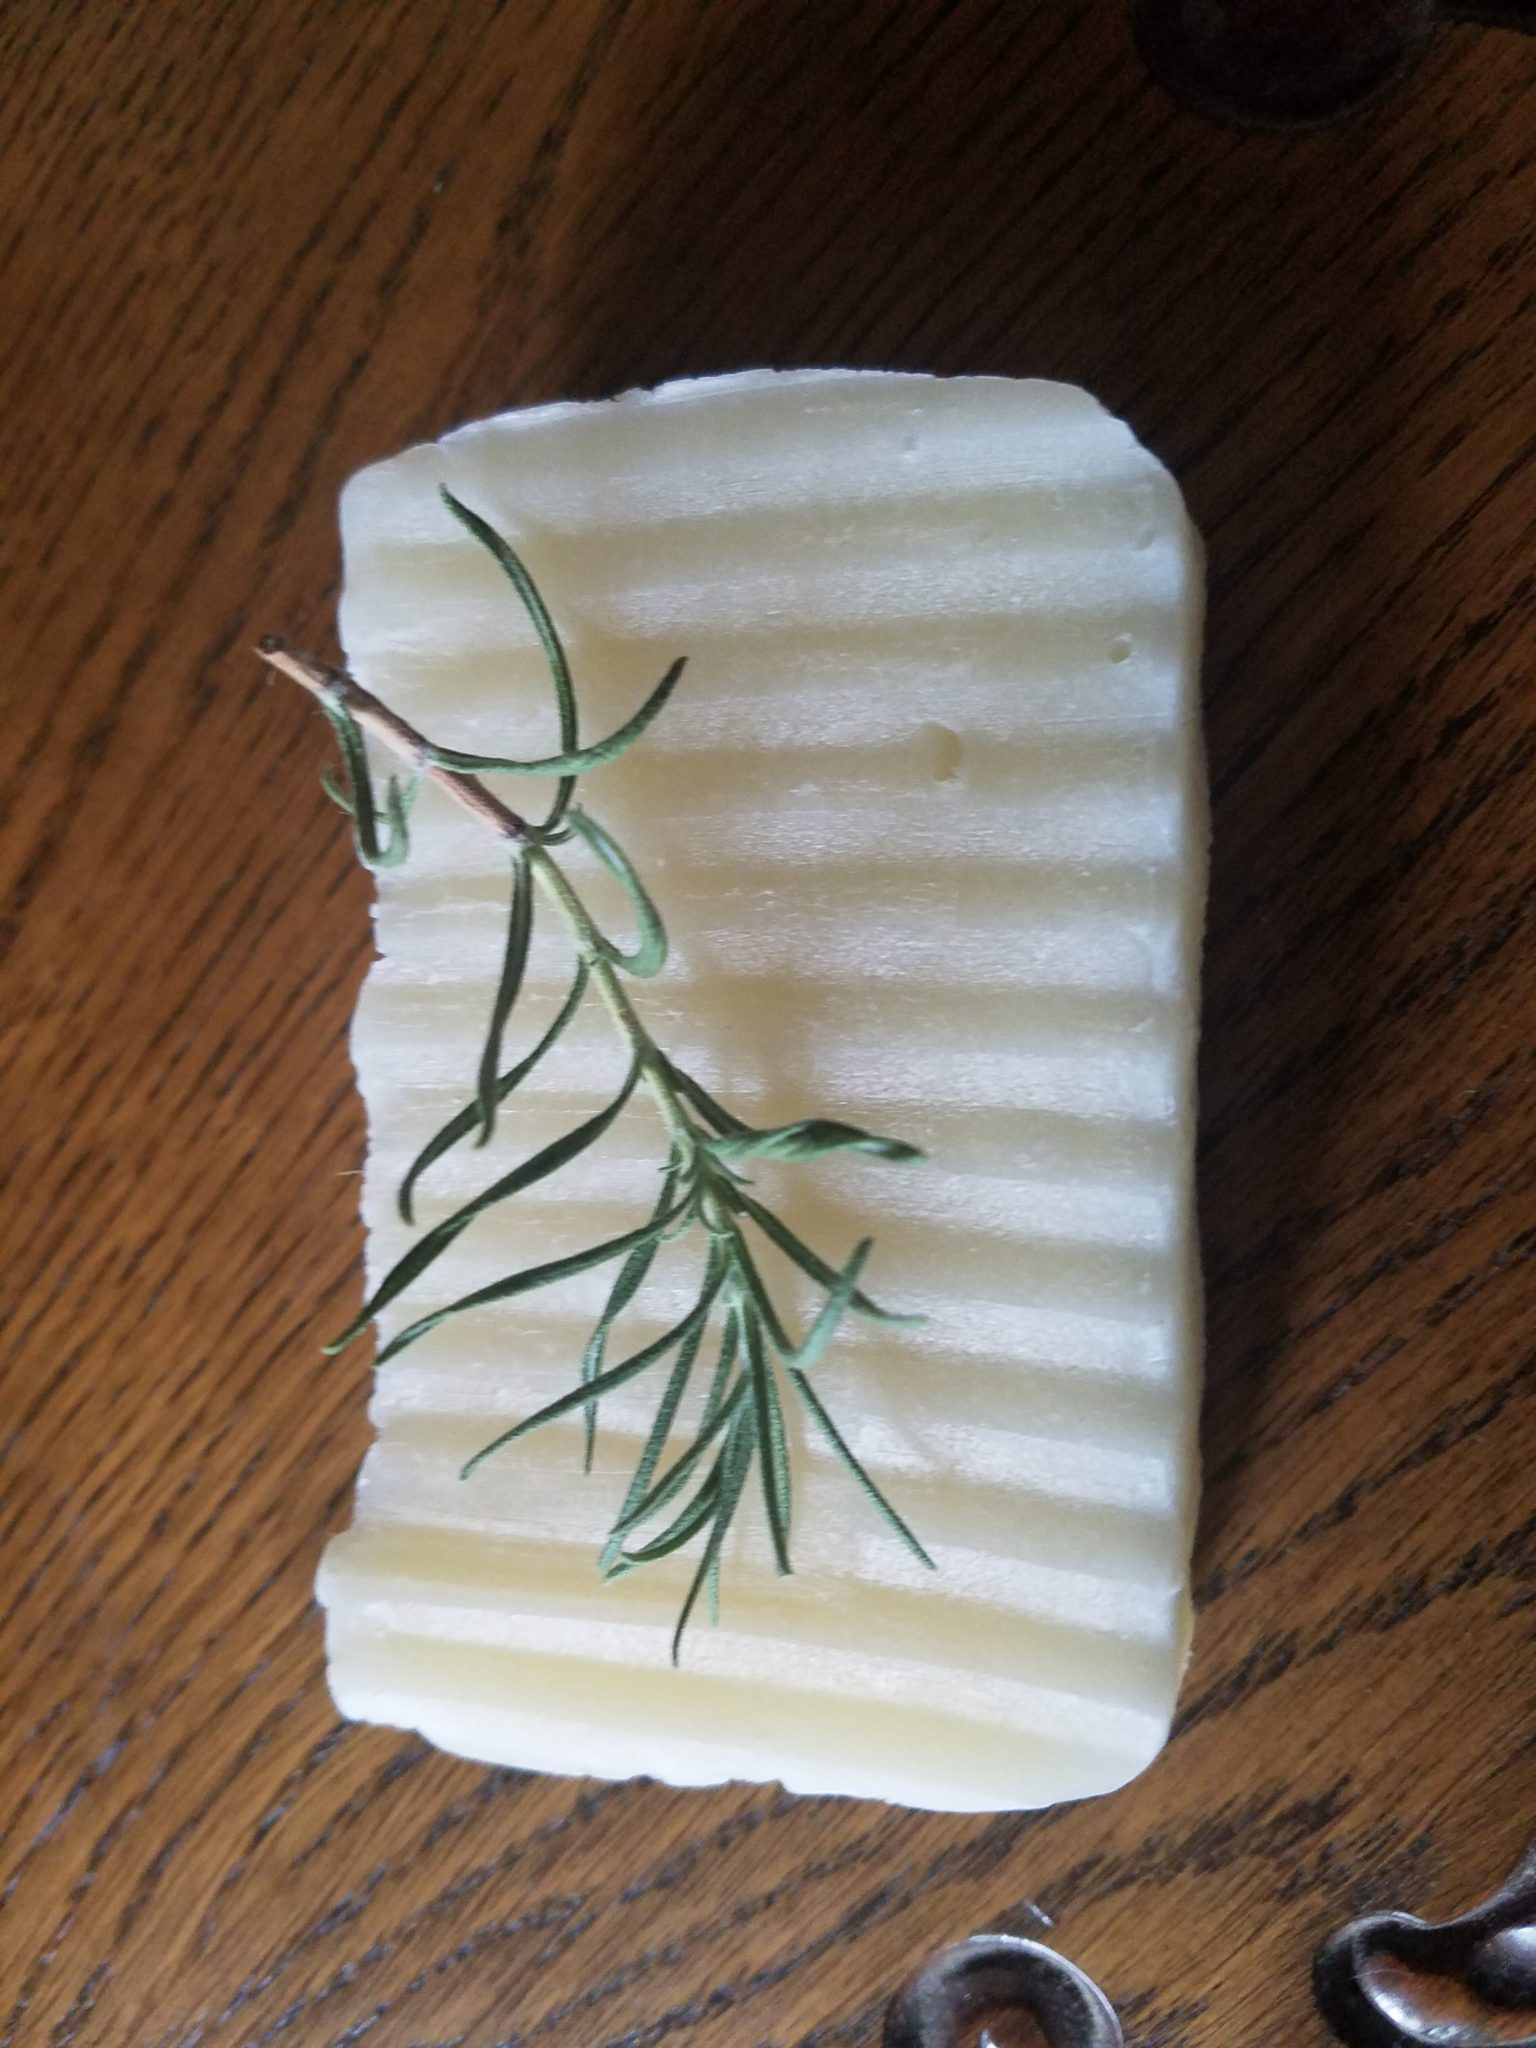 a bar of rosemary soap